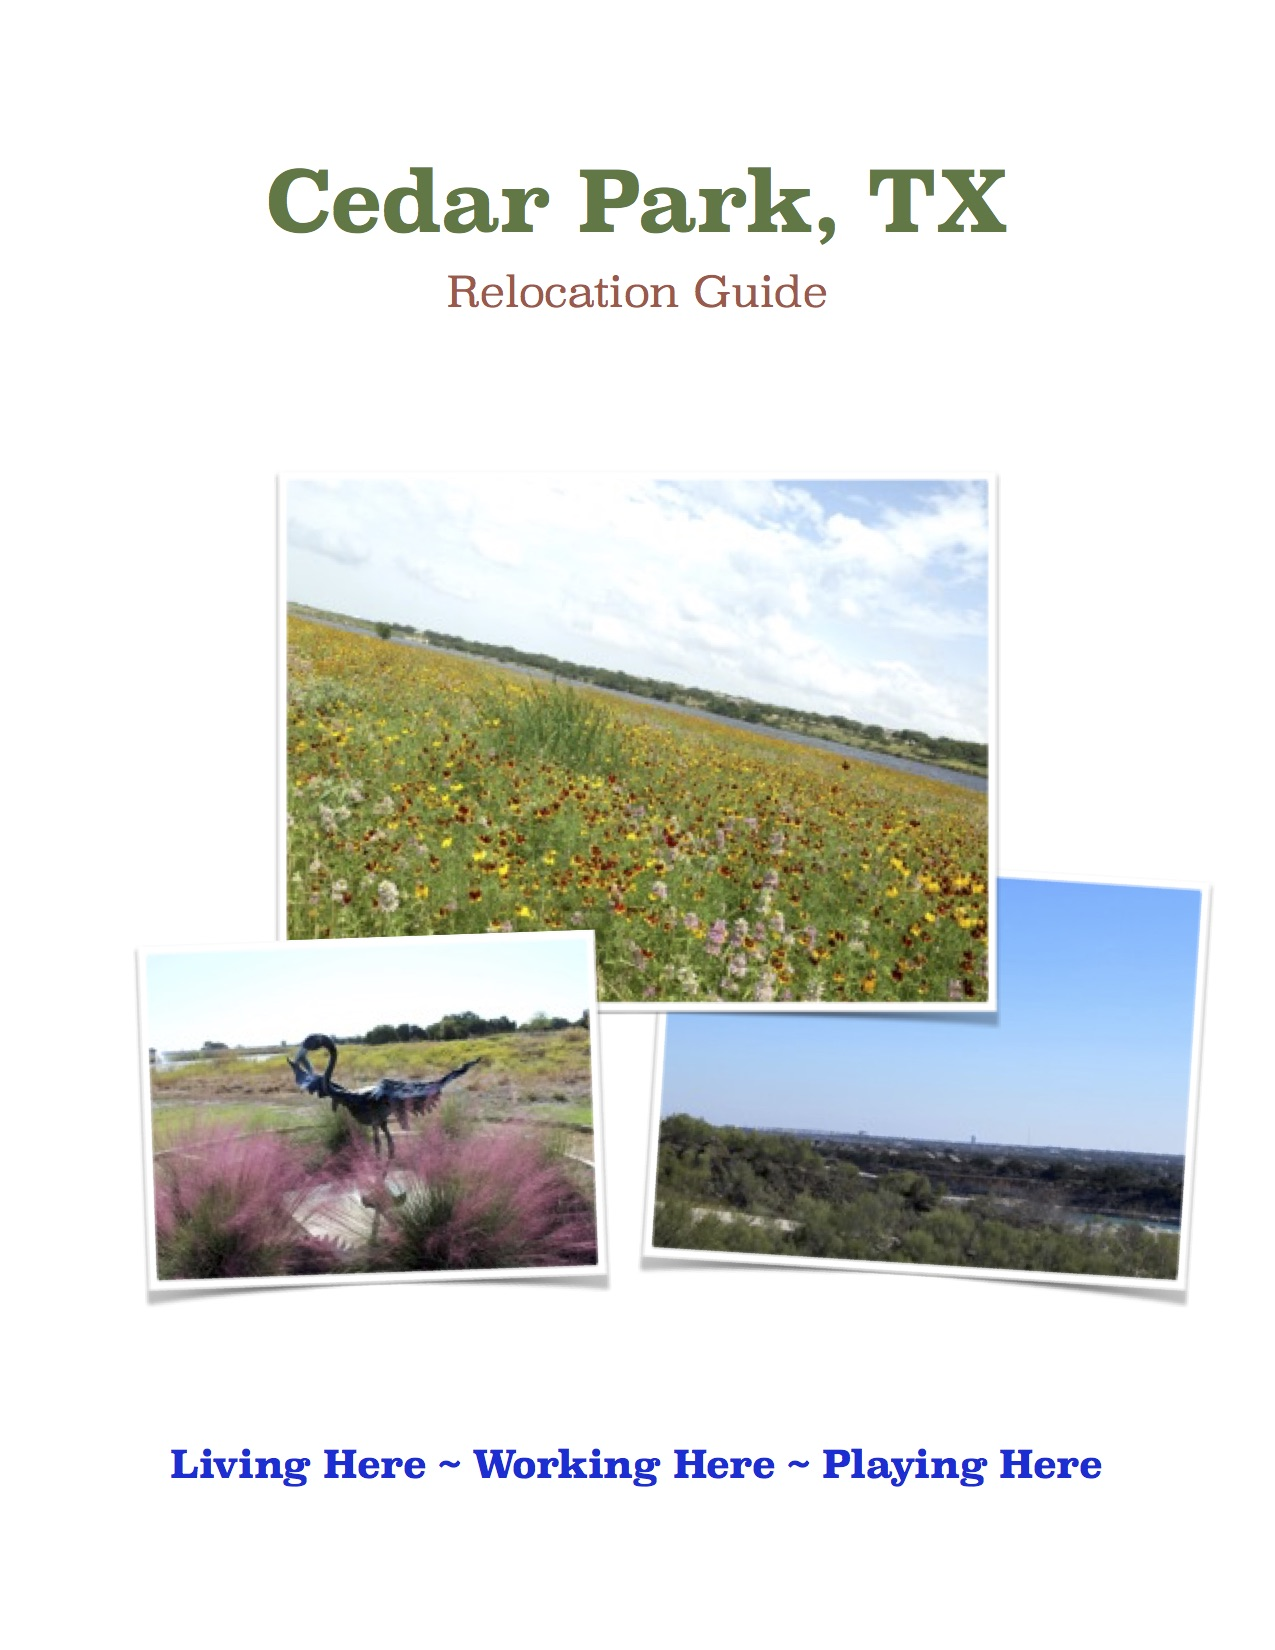 Cedar Park Relocation Guide